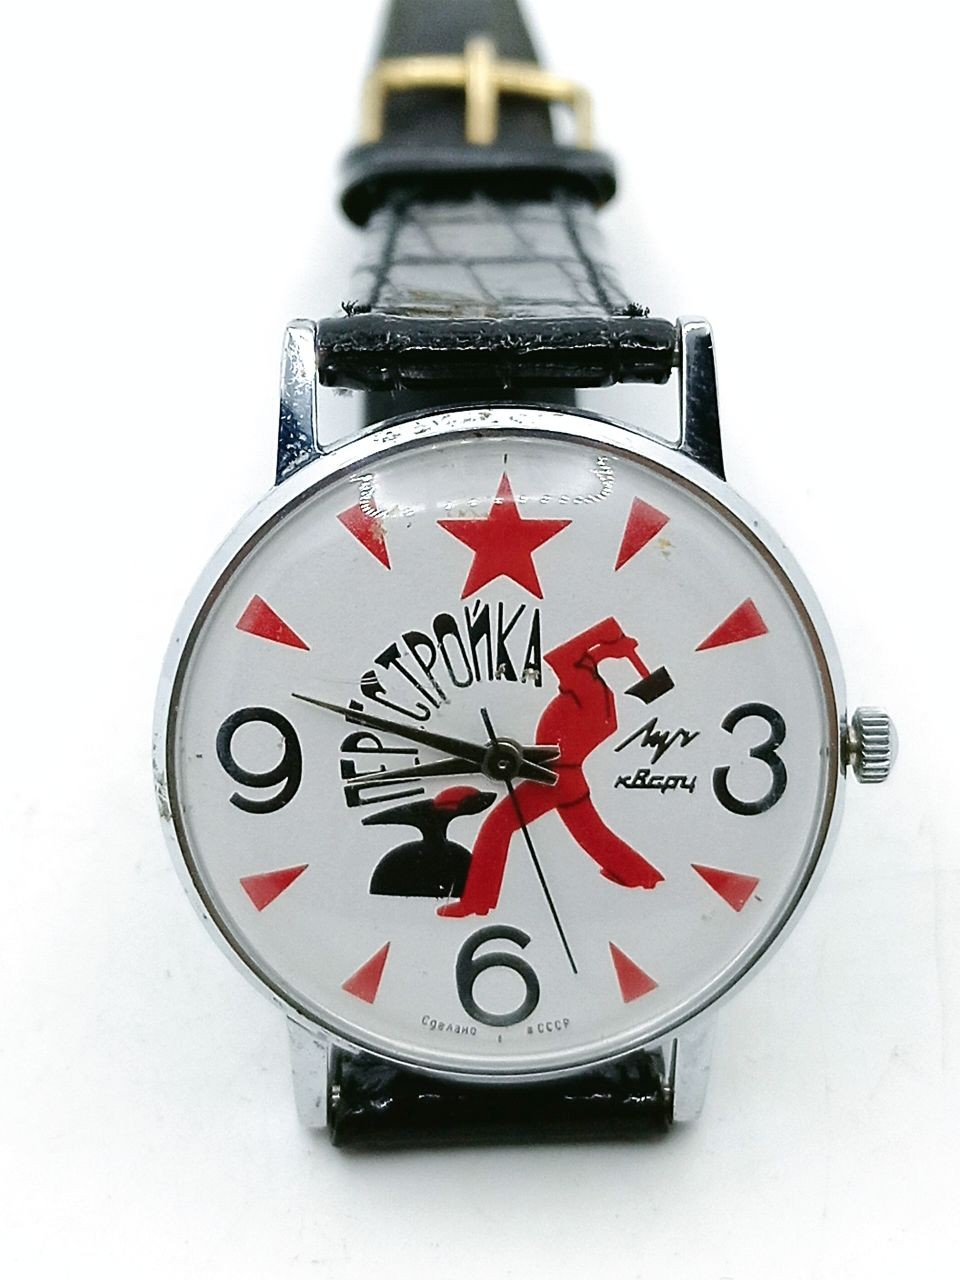 nepectponka russian watch